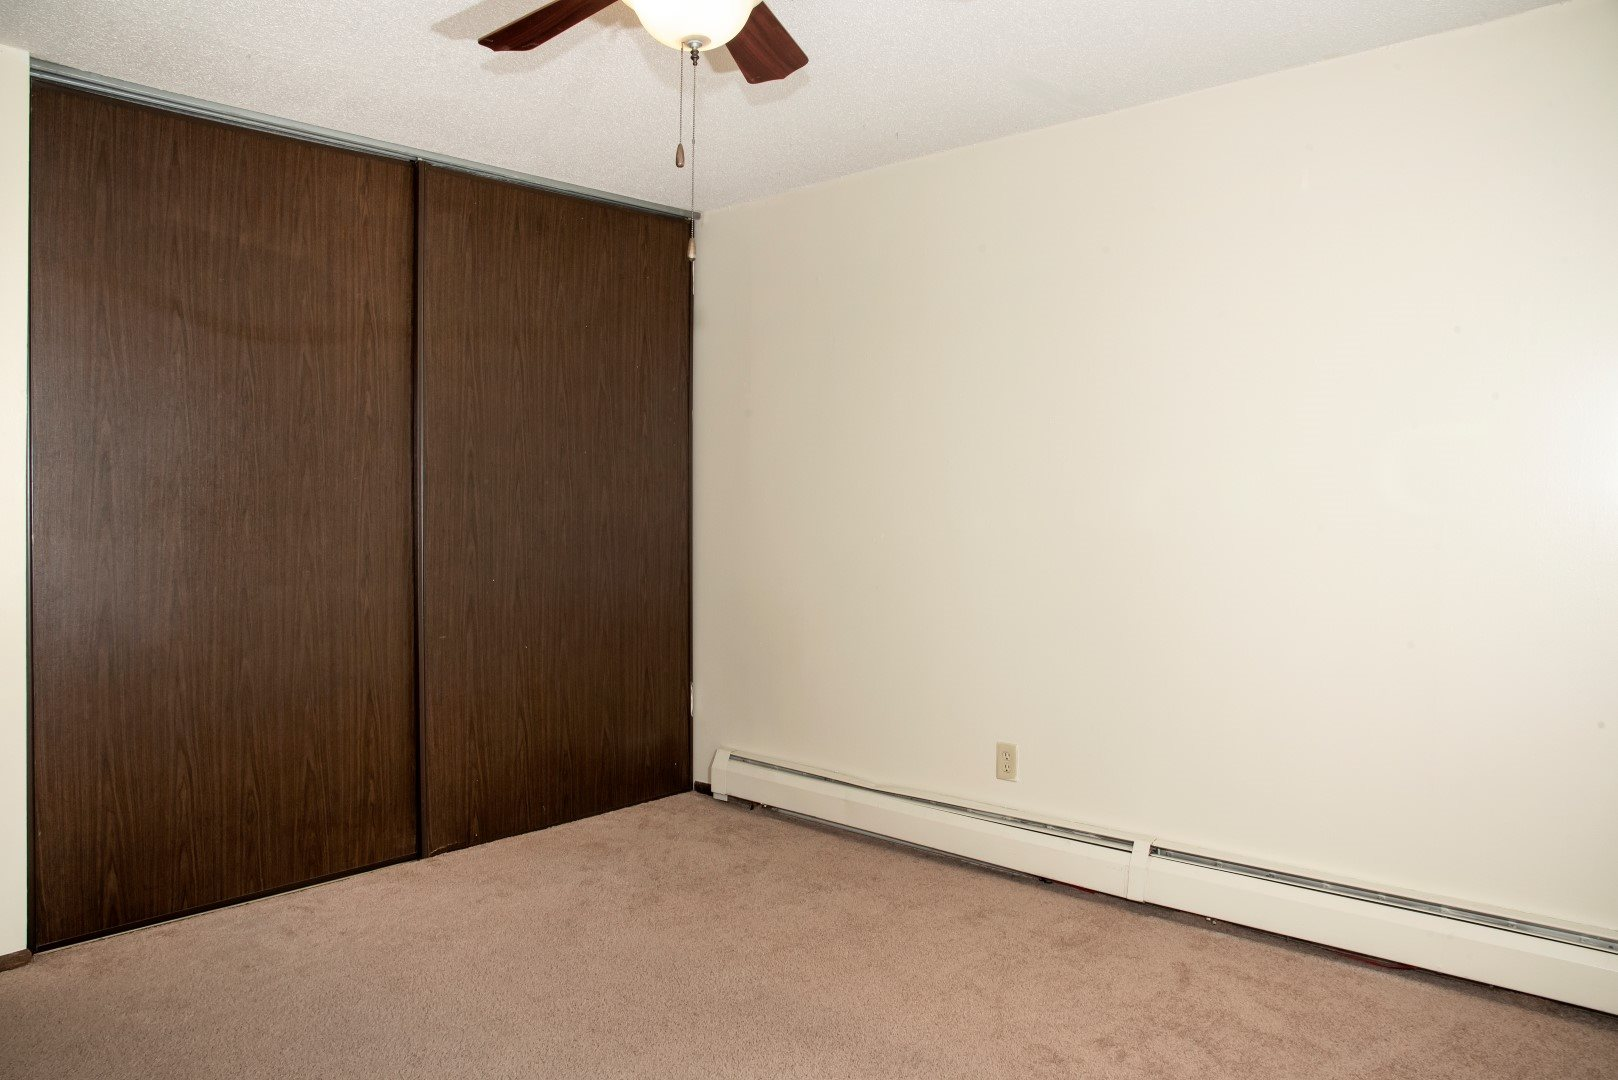 first bedroom, spacious closets, ceiling fan